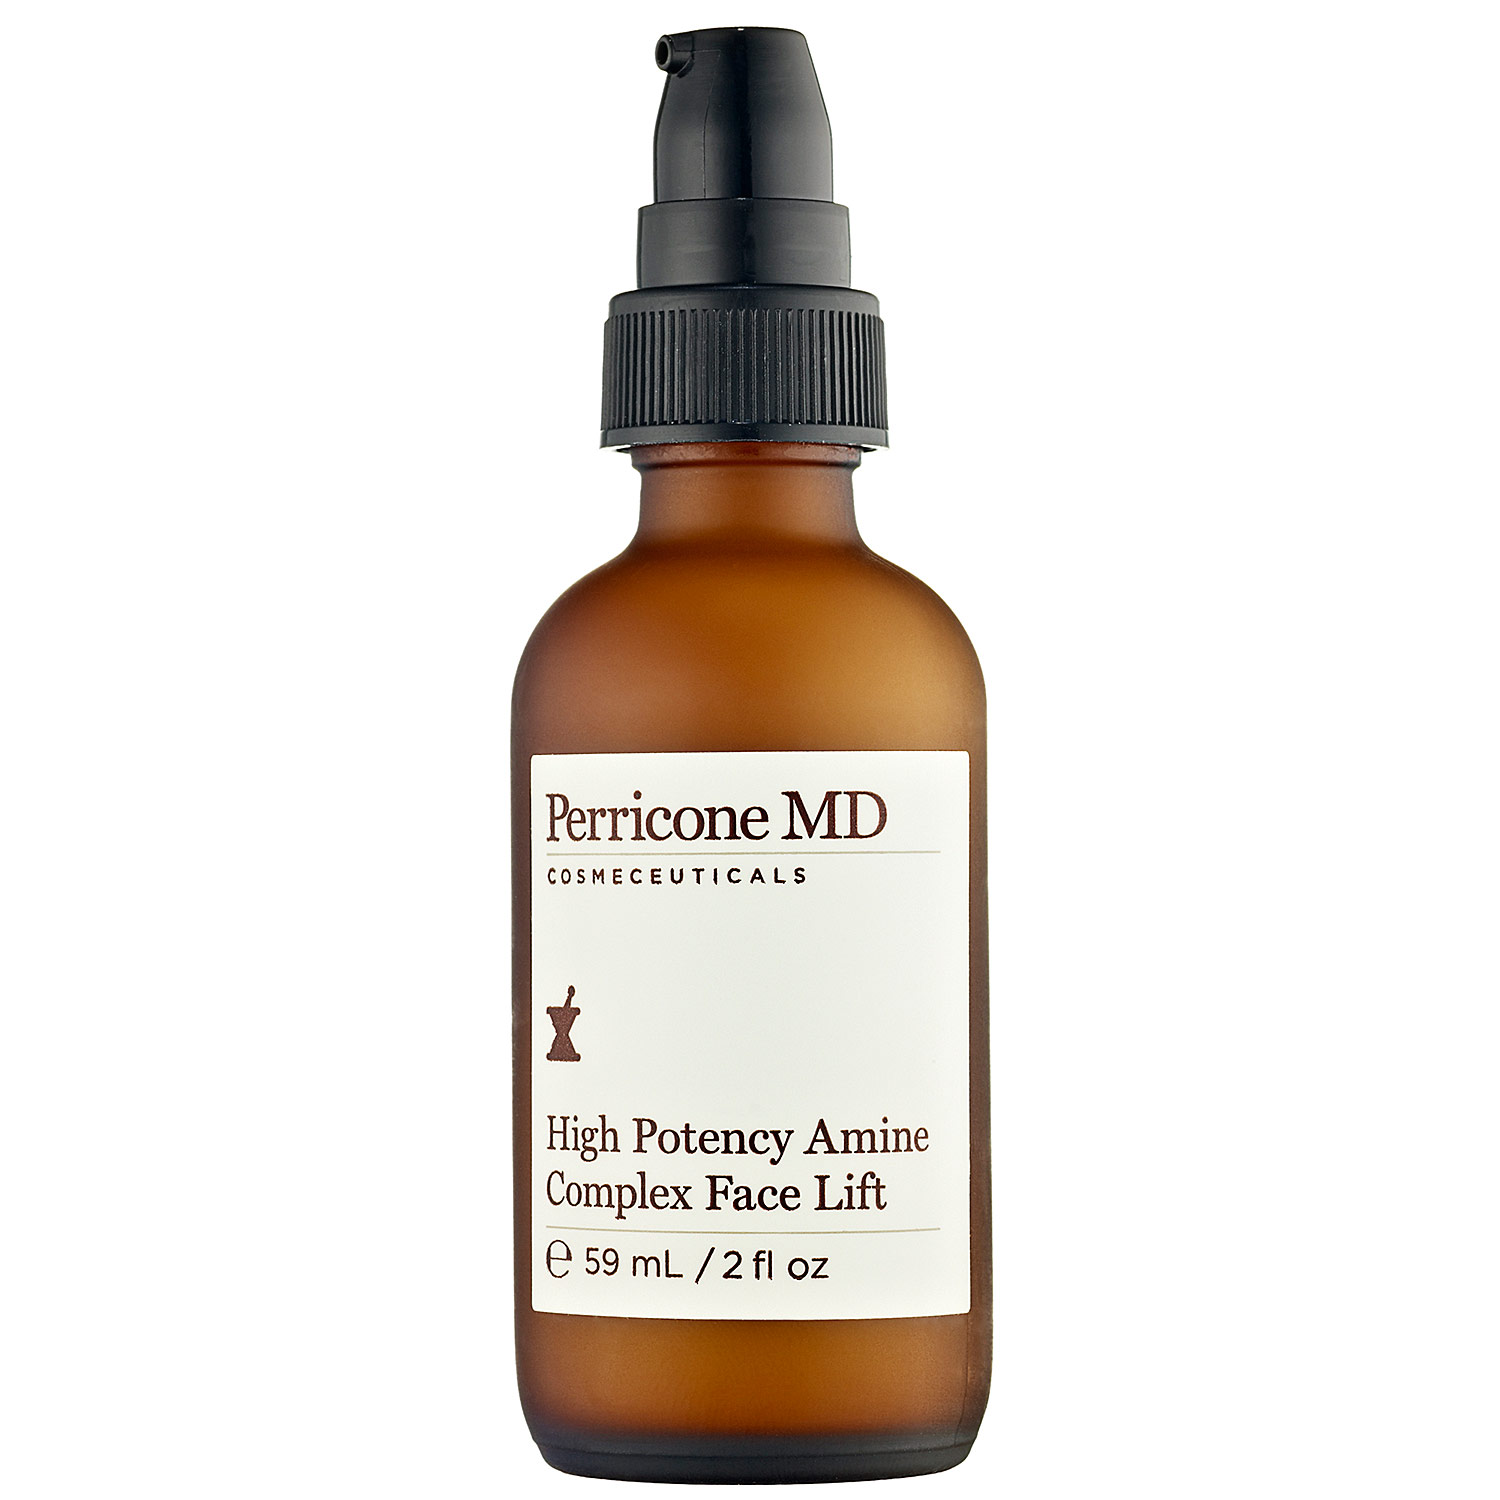 "High Potency Amine Complex Face Lift by Perricone MD  Con vitamina C y DMAE, High Potency es un tratamiento altamente concentrado para afirmar y tonificar el cutis, mientras reduce los daños provocados por el sol. Es uno de los ""must have"" esencial para una piel divina."